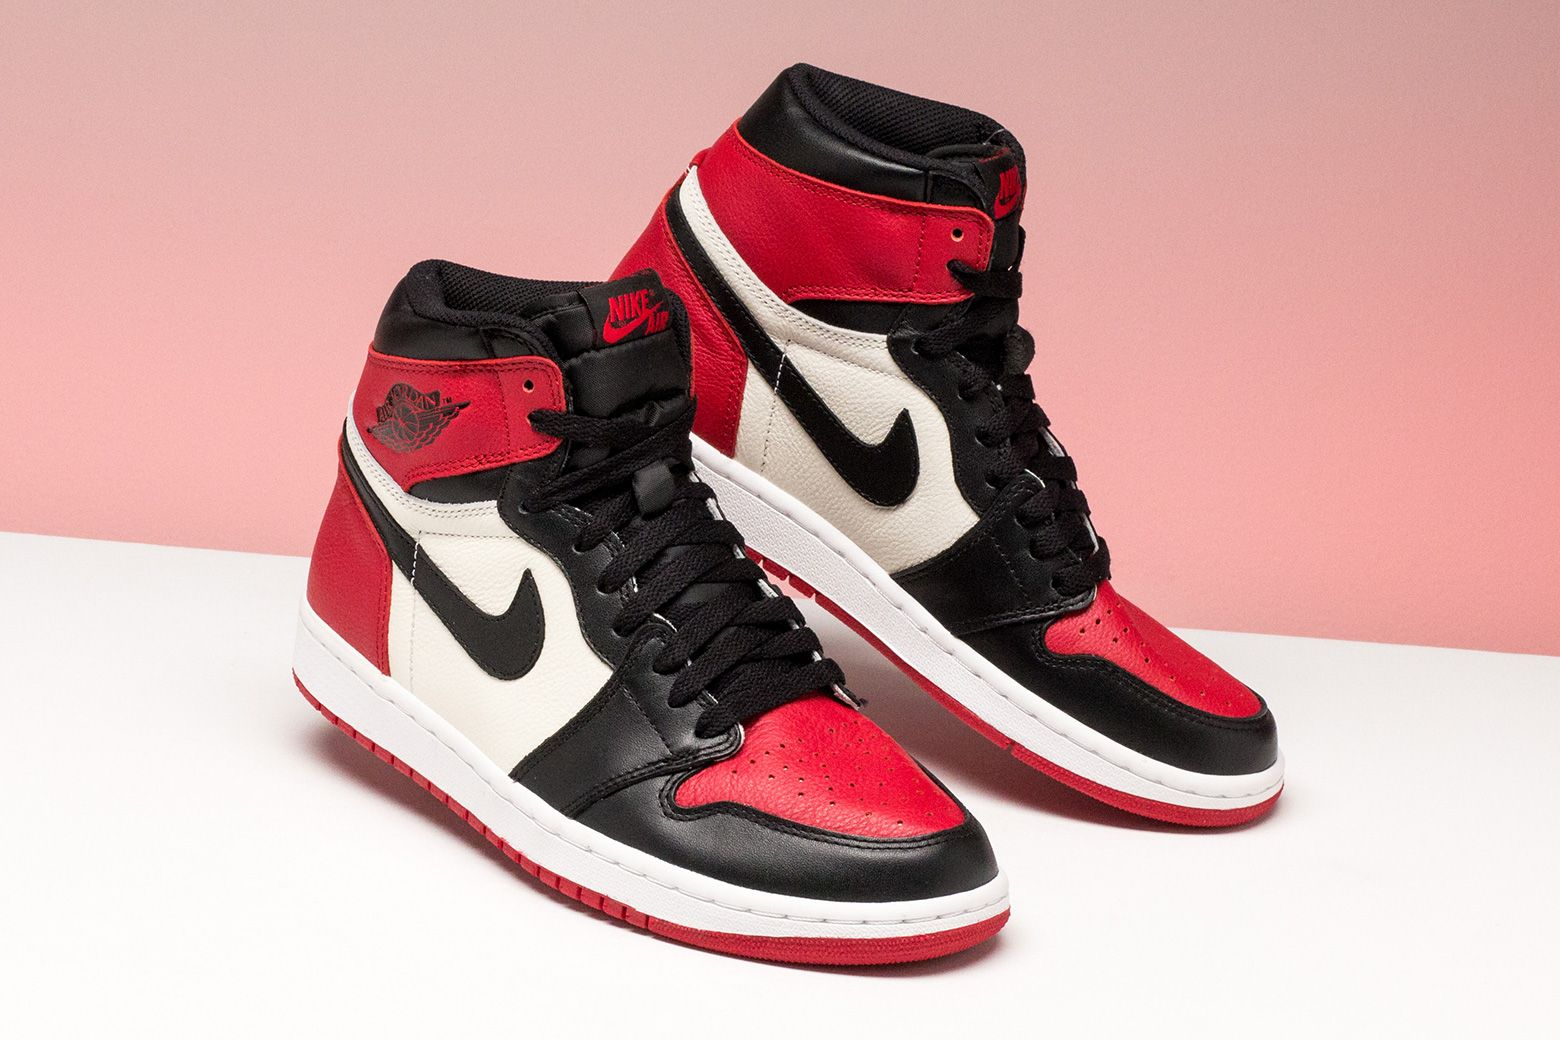 5ad94606e15 Jordan 1 Retro High 'Bred Toe' - Size 7 in 2019 | Air Jordan ...